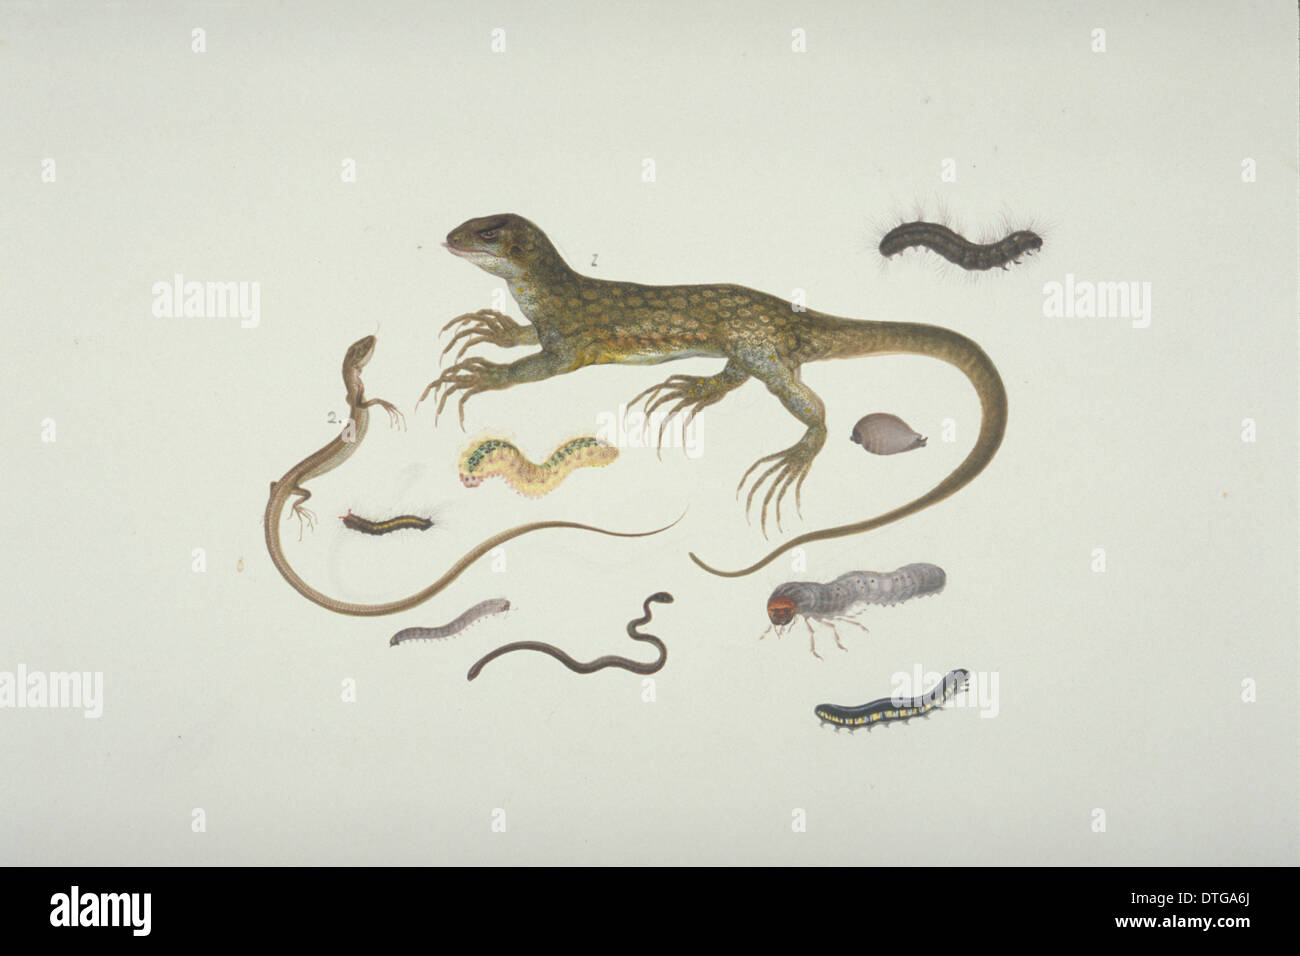 Plate 100 from the John Reeves Collection (Zoology) - Stock Image